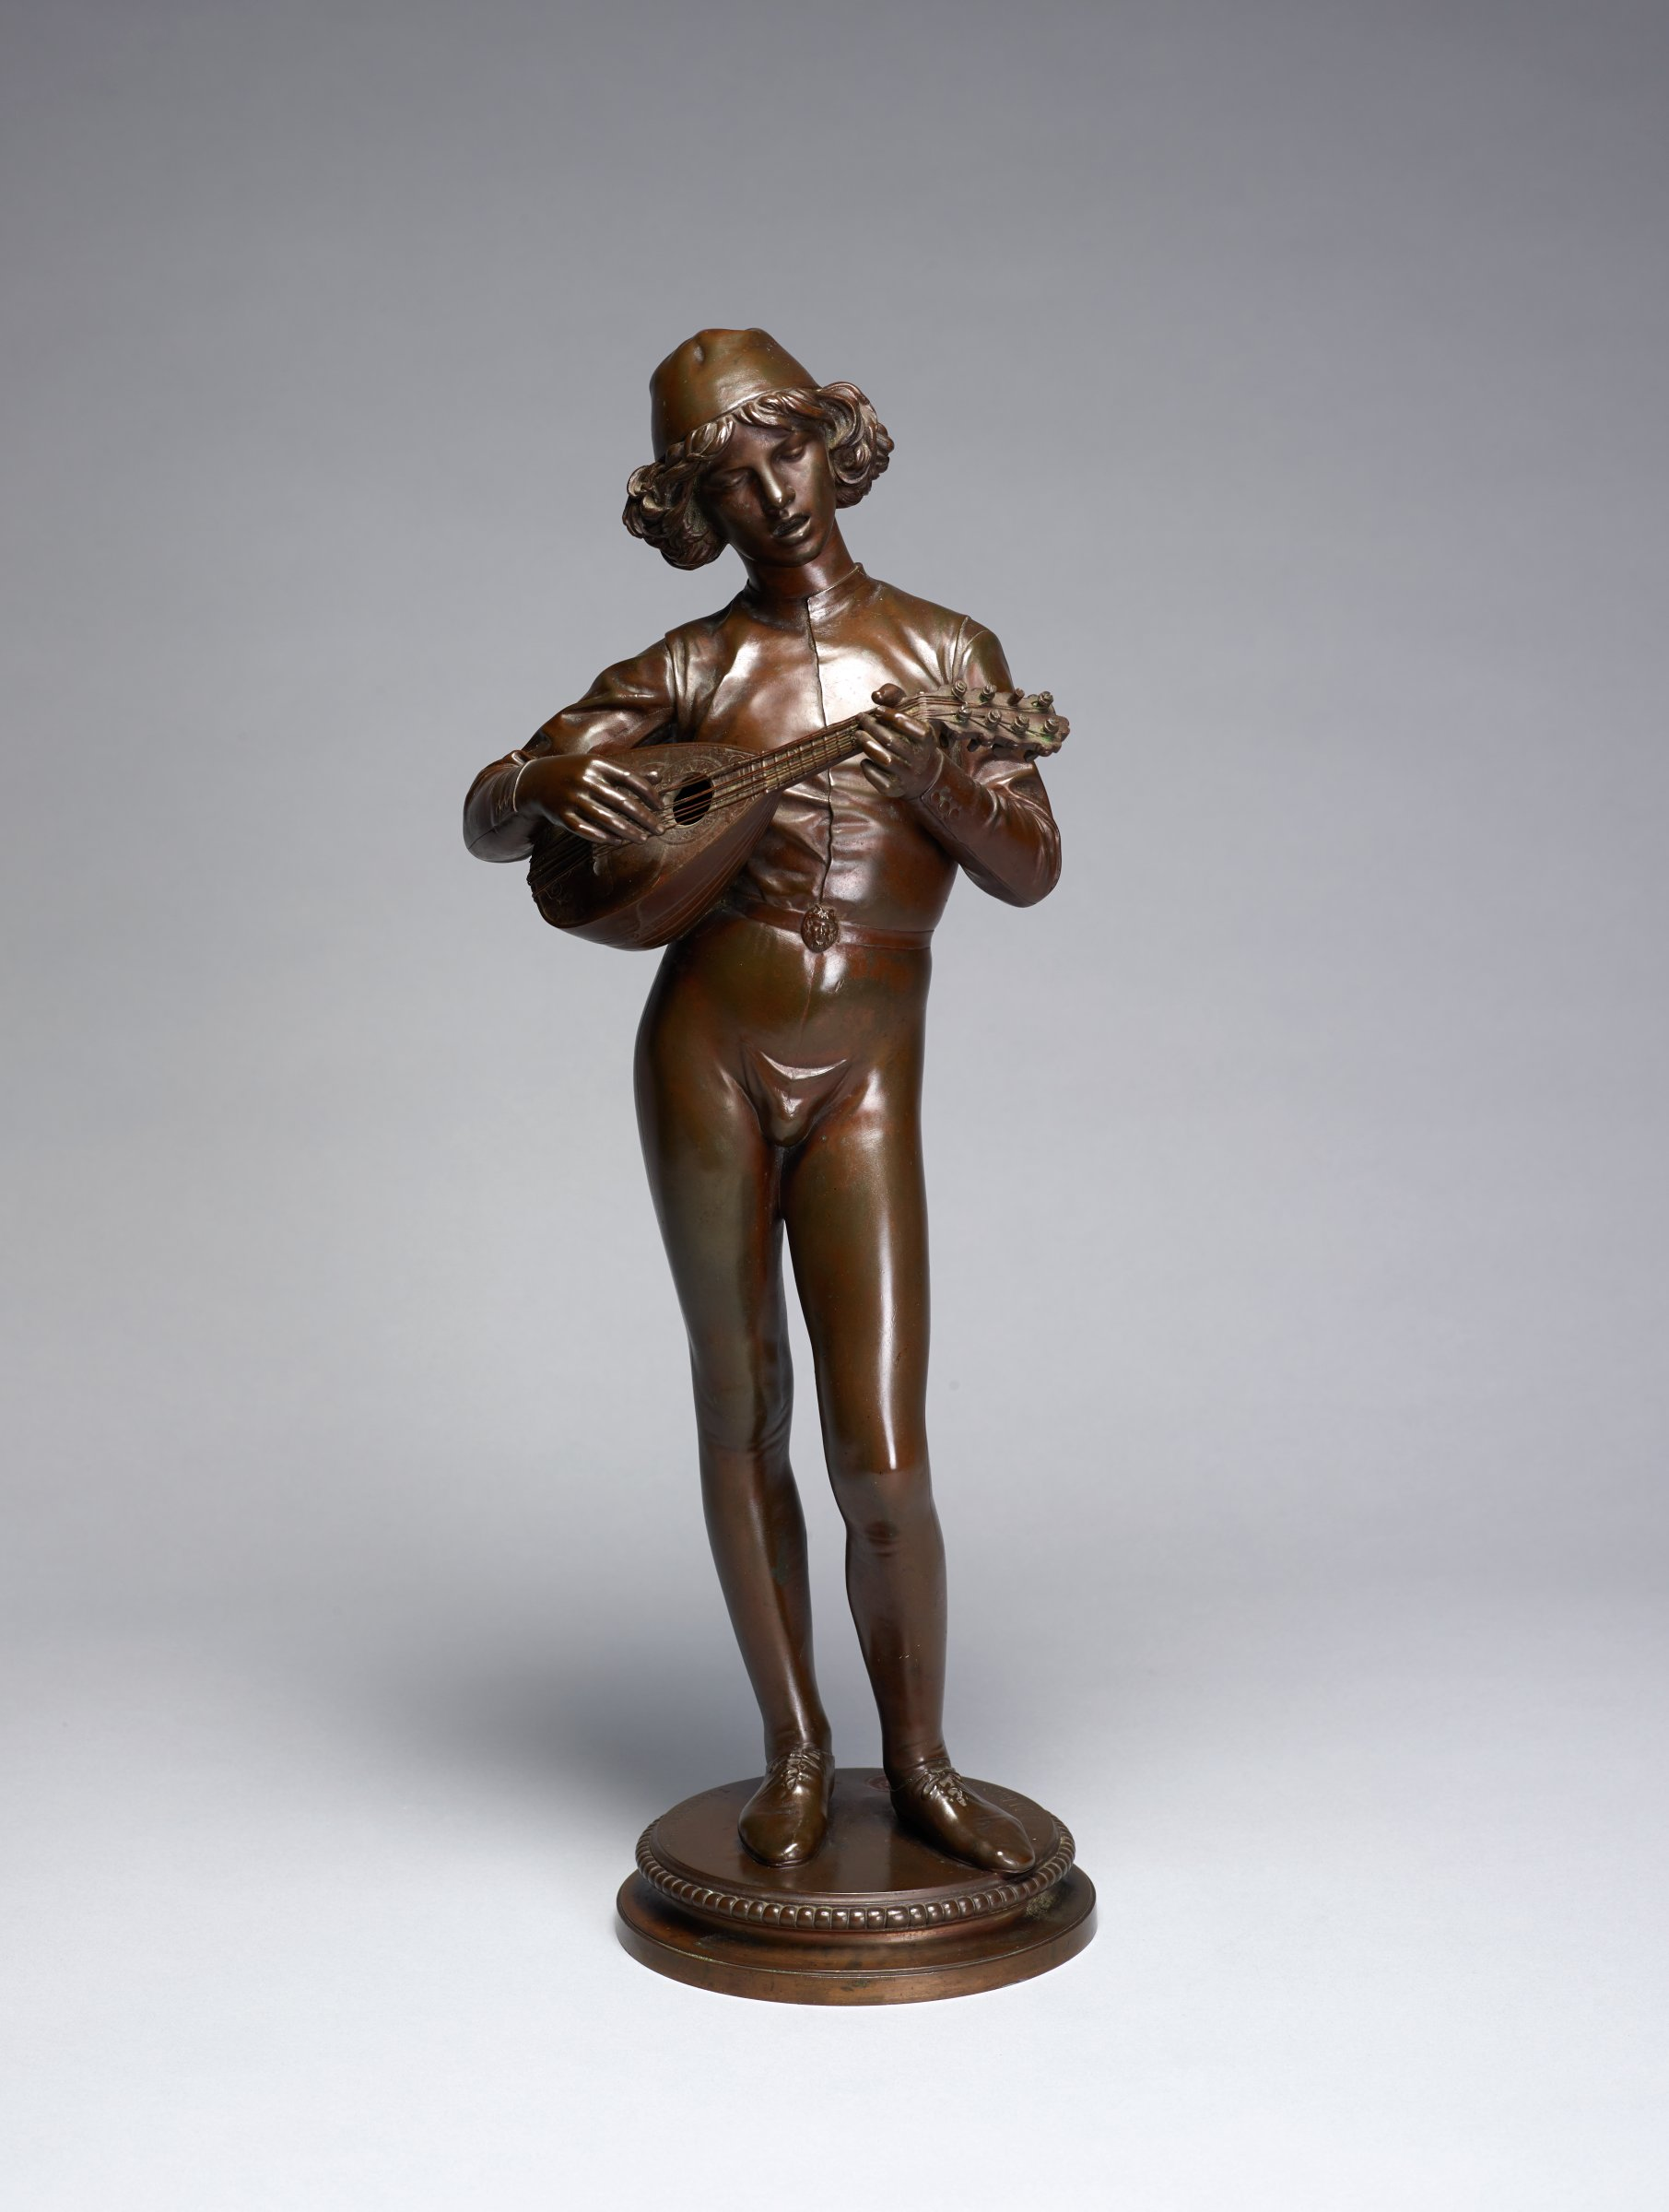 A young man sings and plays a mandolin. He stands with his weight shifted to his proper left leg. This sculpture is copied from a 15th century sculpture.